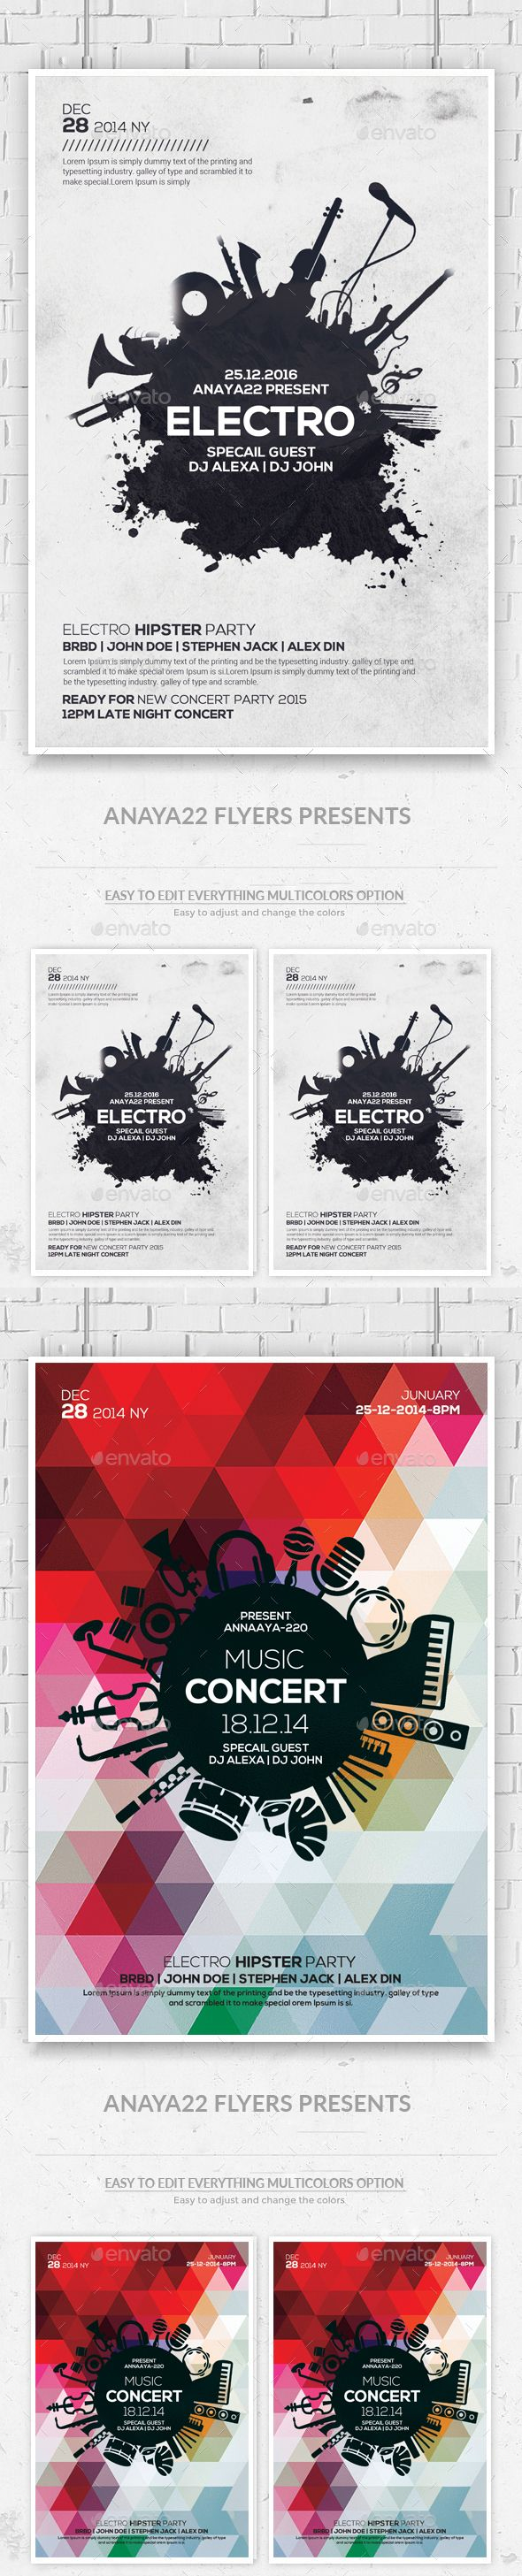 Electro Music Flyers Templates PSD #design Download: http://graphicriver.net/item/electro-music-flyers-bundle/13487842?ref=ksioks